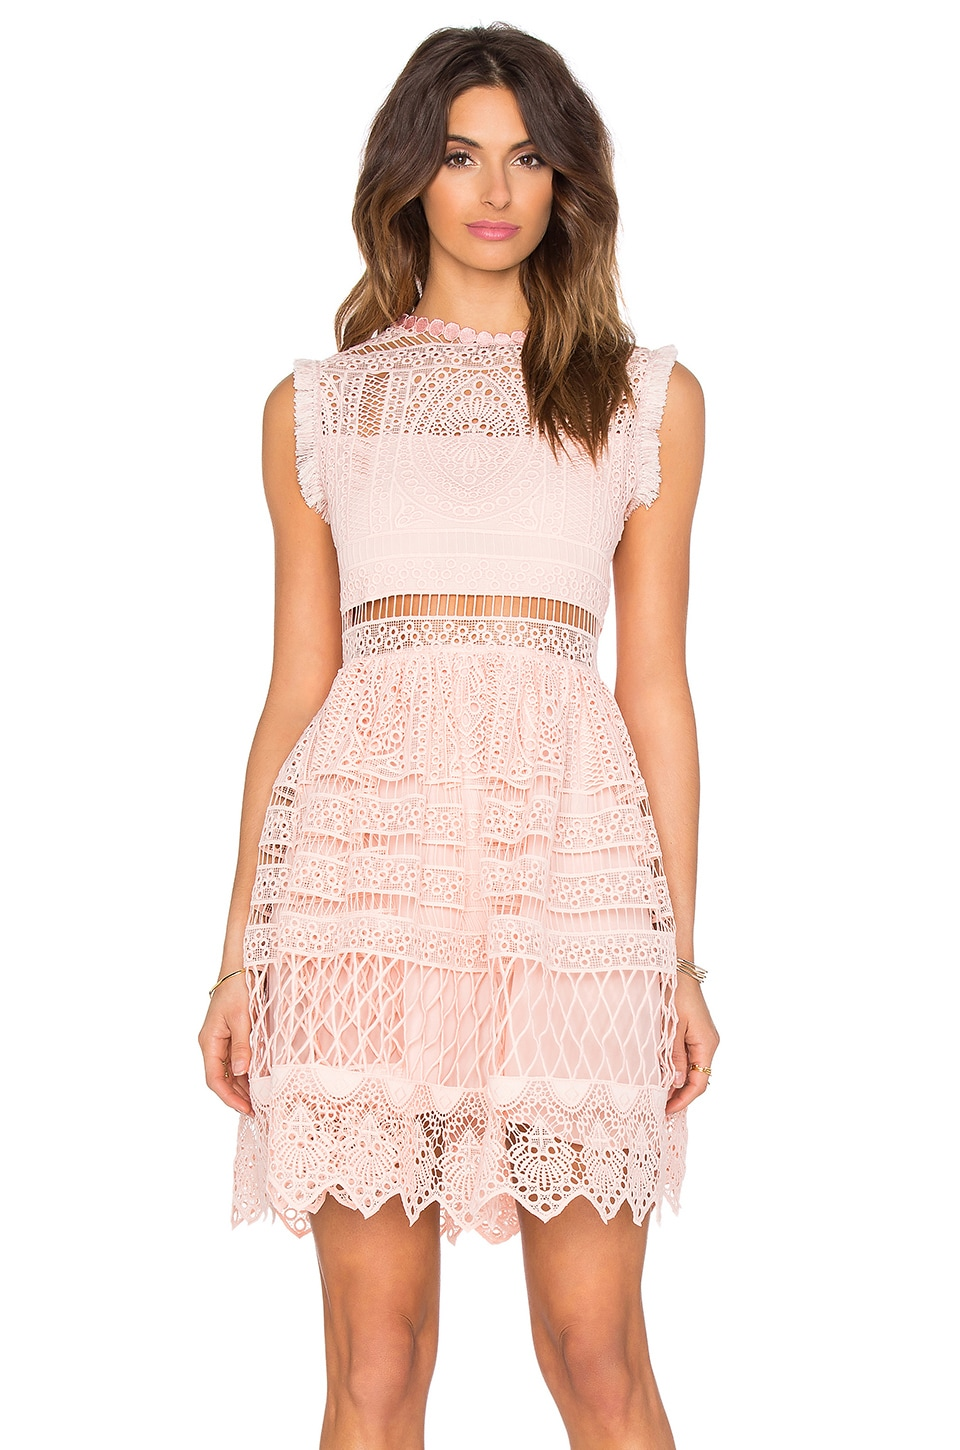 Alexis Sage Fit & Flare Dress in Blossom